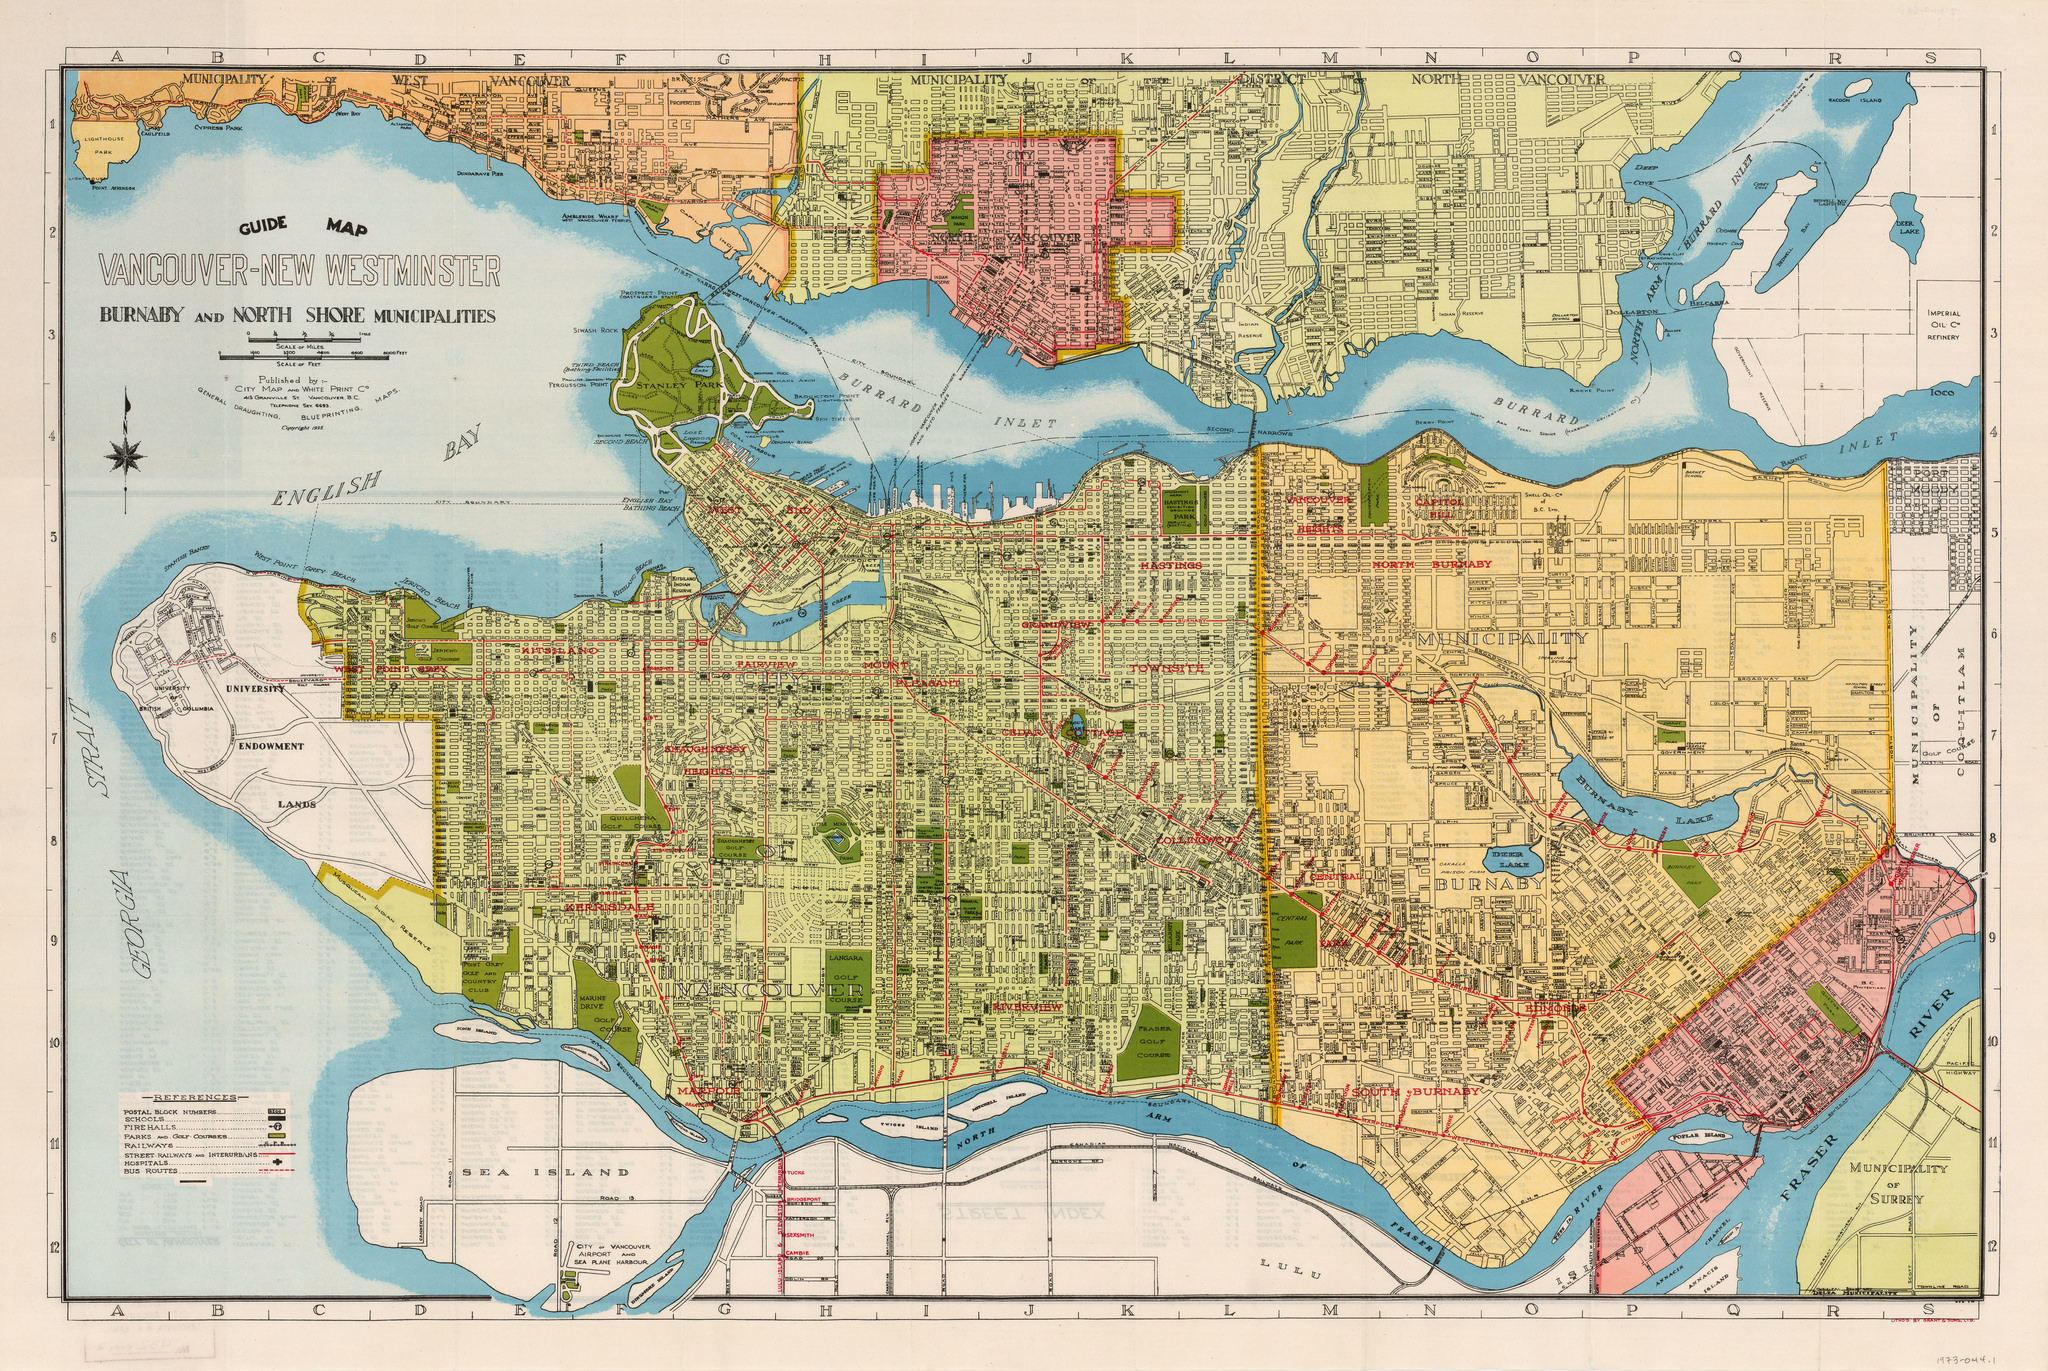 Vancouver Historic Maps and Plans - Canadian GIS & Geomatics